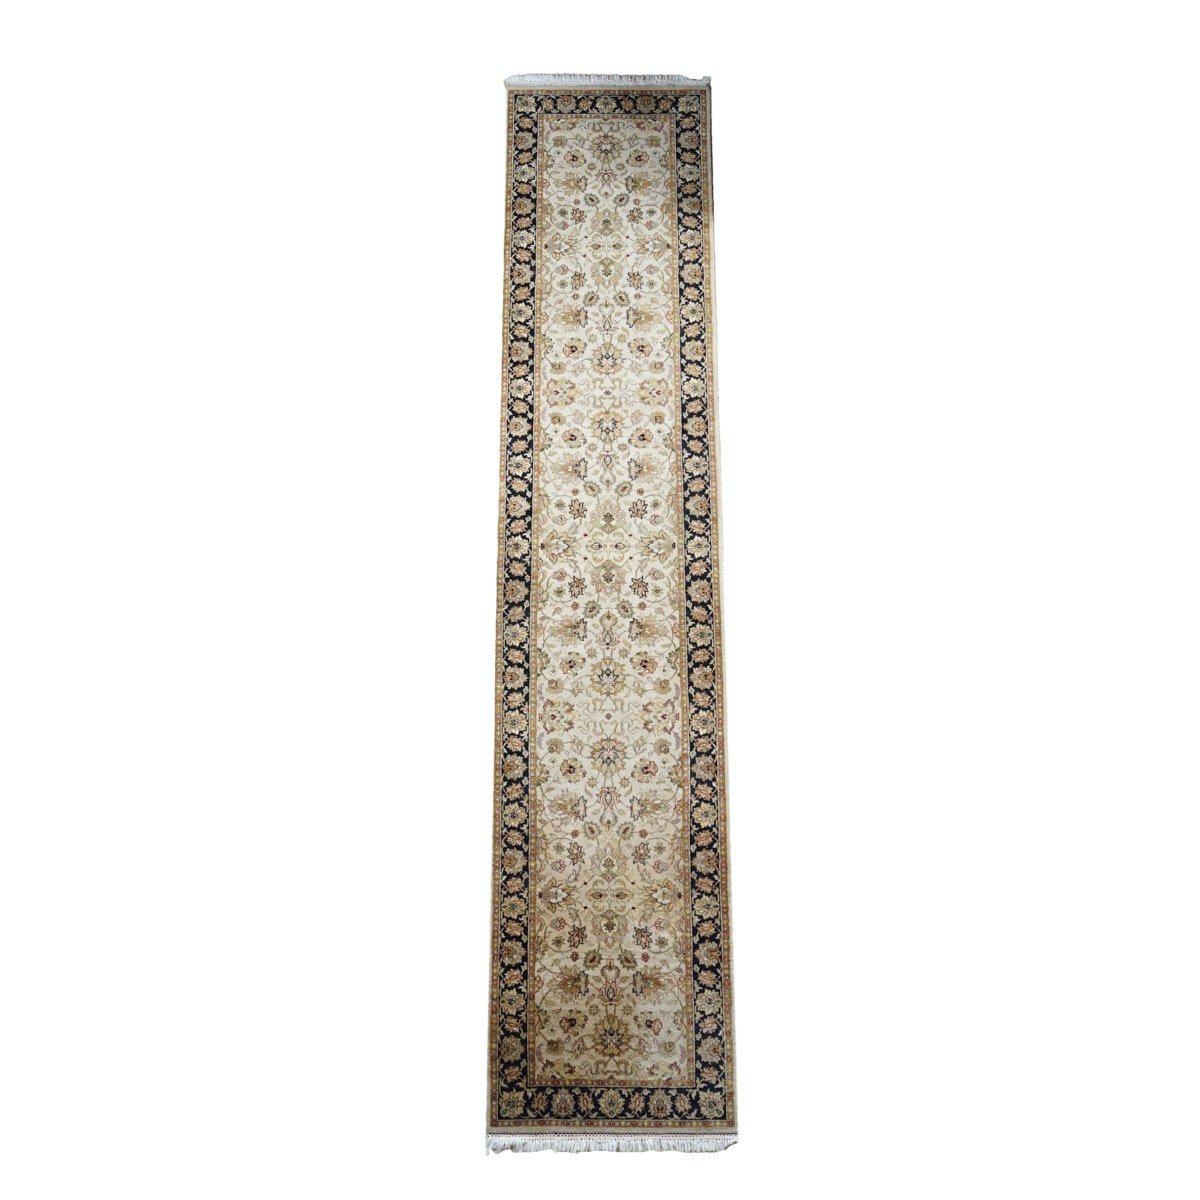 Arabesque Black and Tan Floral Runner